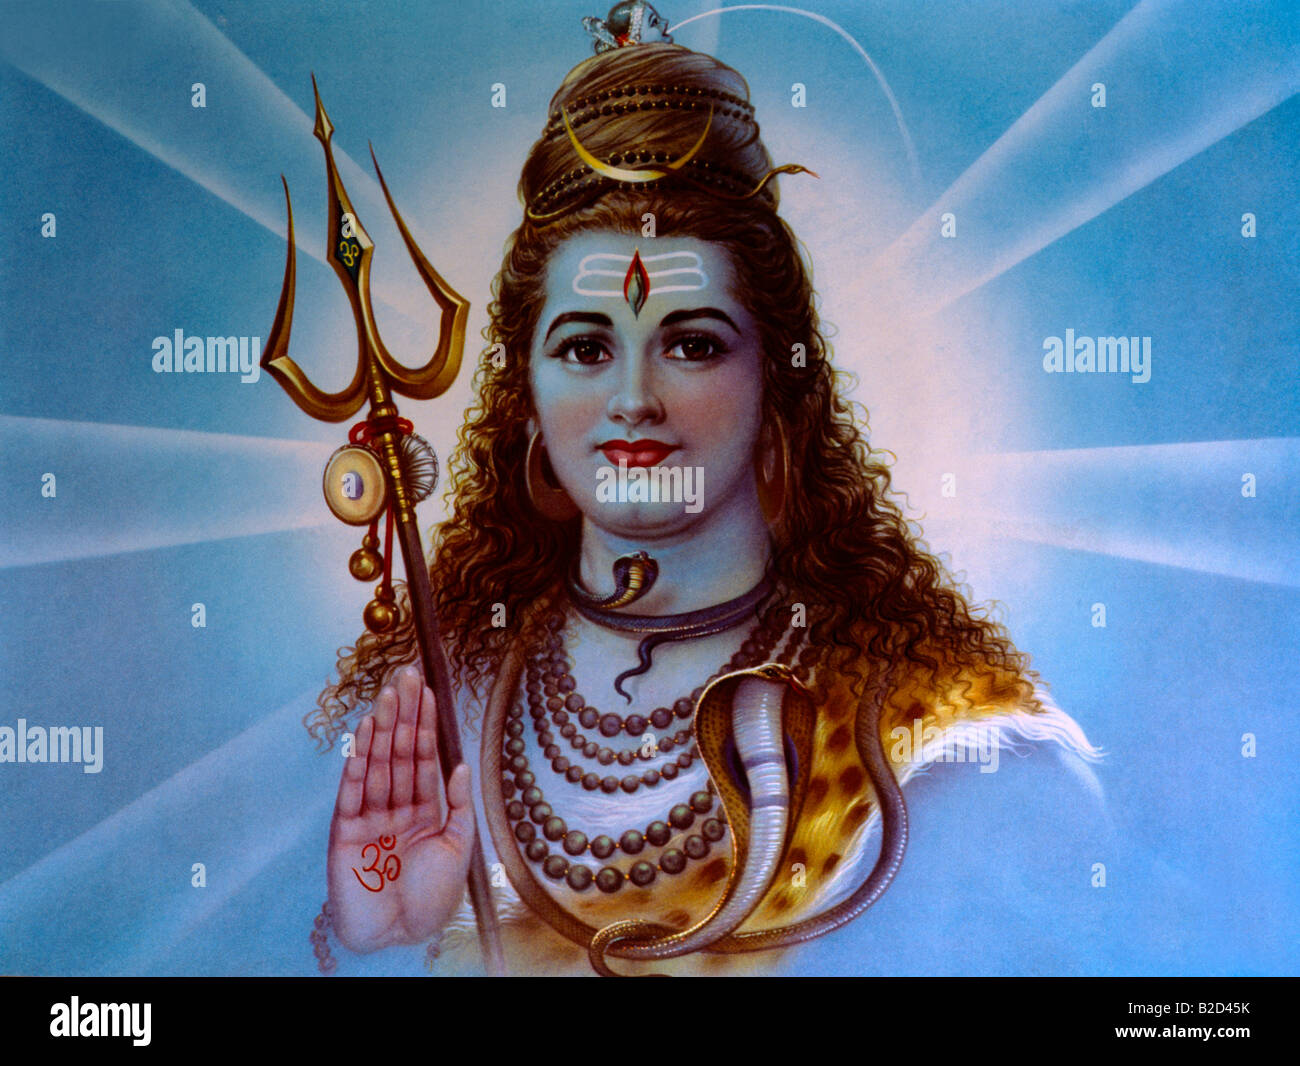 Shiva - Hindu God - Stock Image